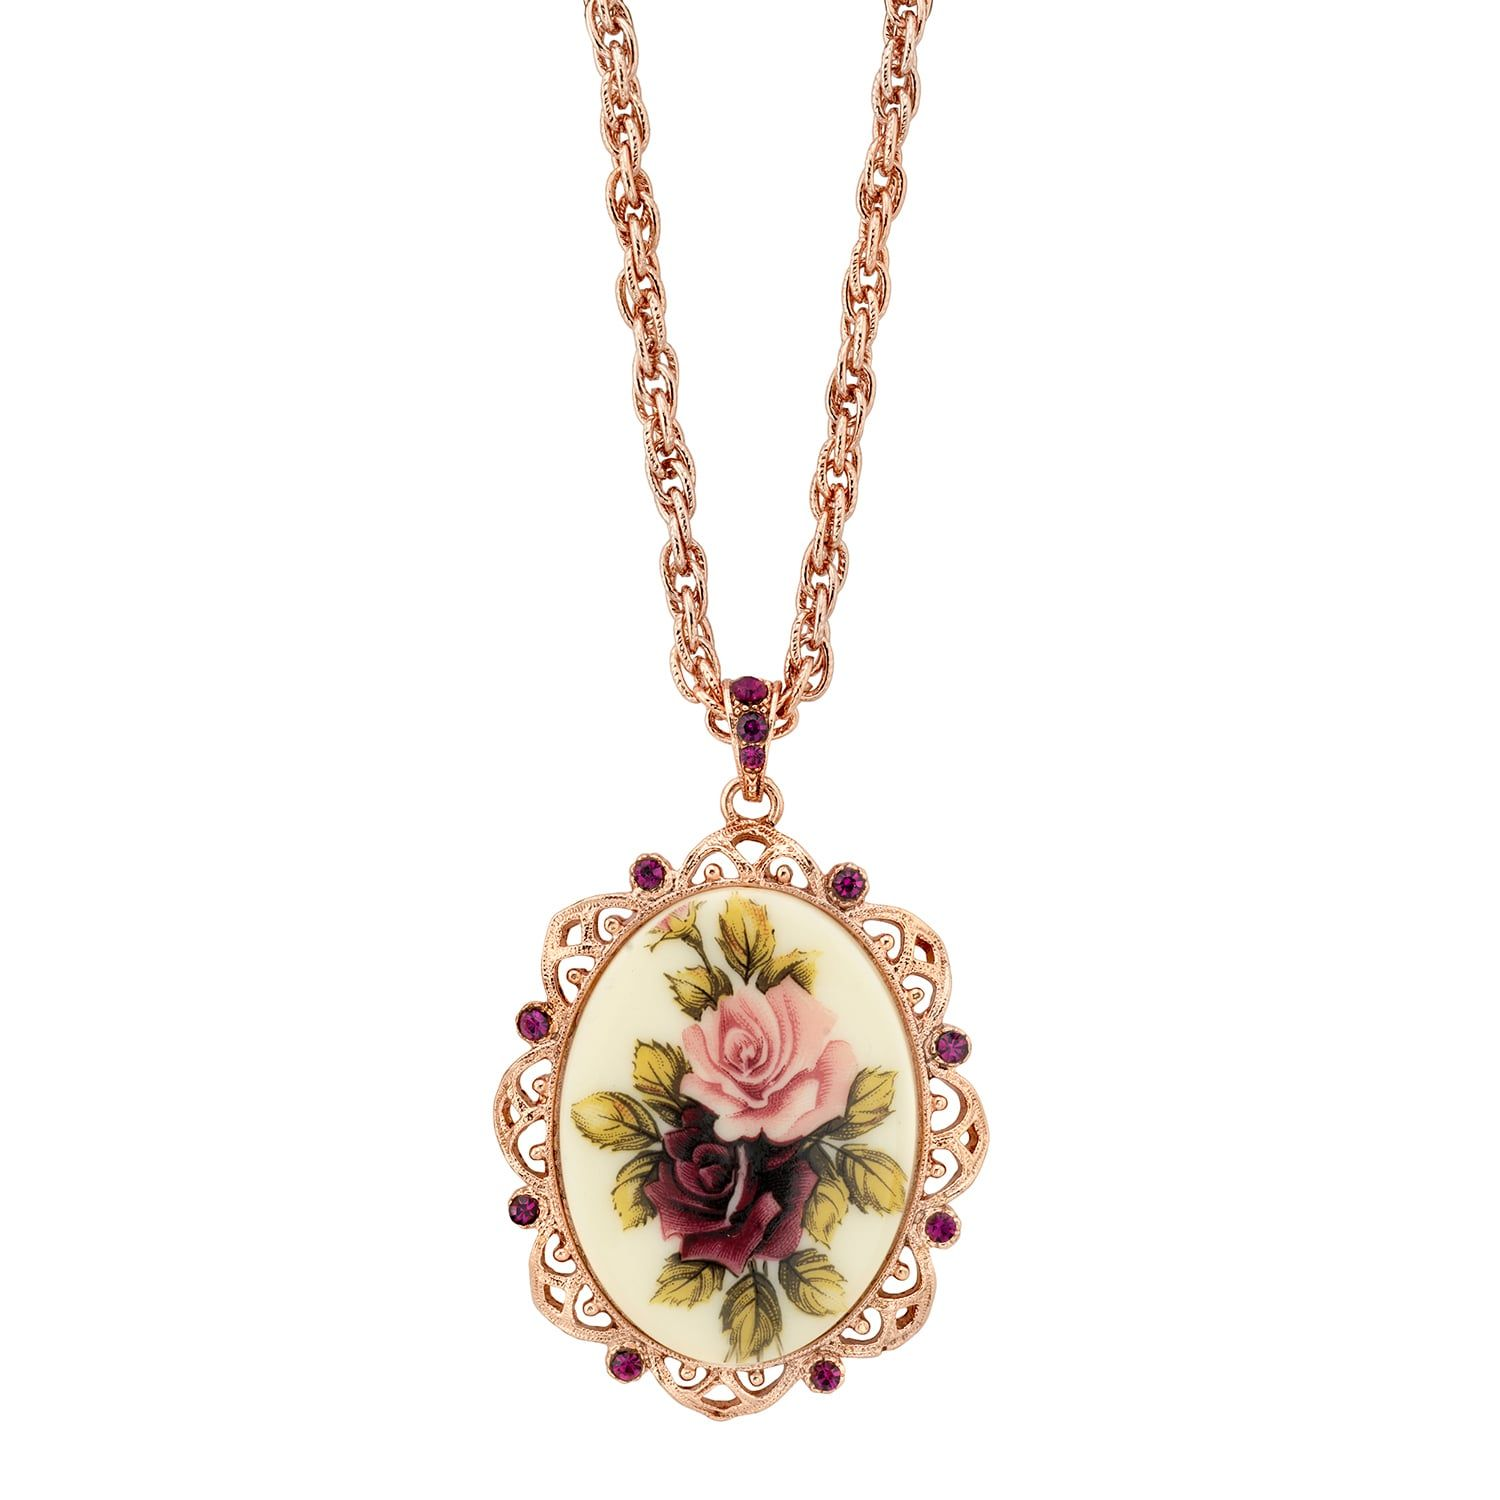 1928 Flower Simulated Crystal Oval Pendant Necklace